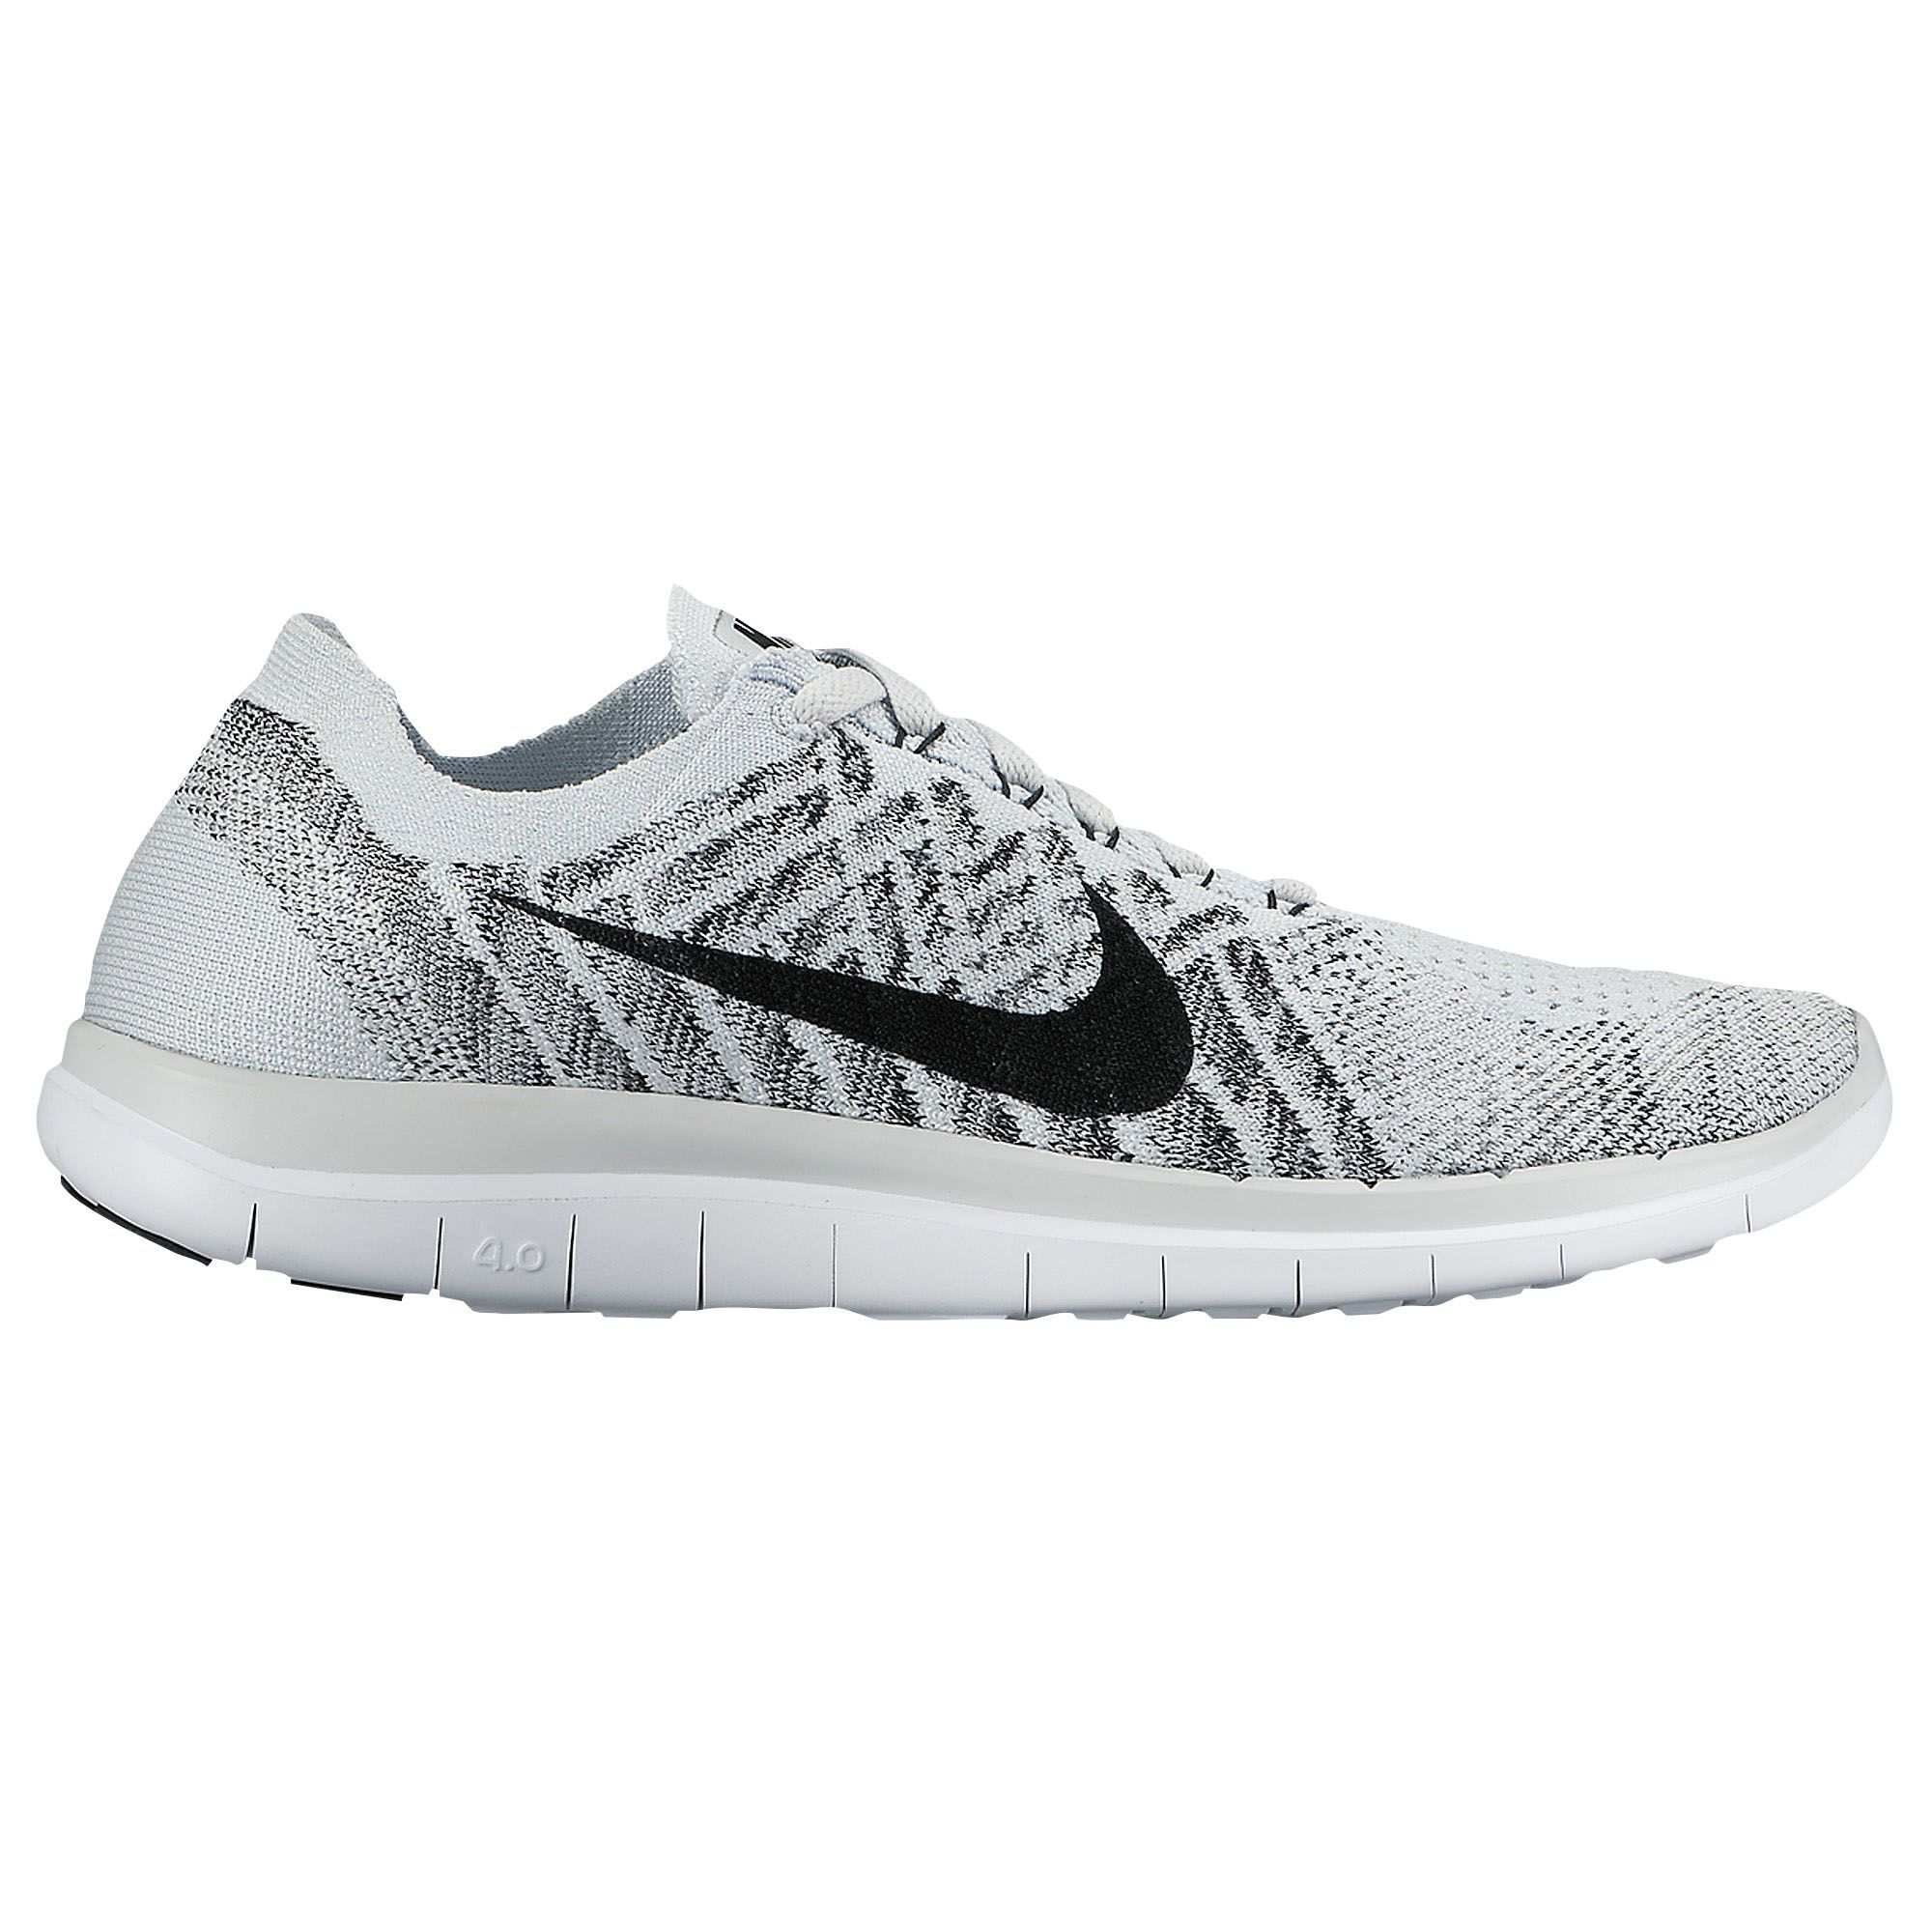 reputable site 445eb f7ca1 Nike Free 4.0 Flyknit 2015 - Women's - Running - Shoes ...